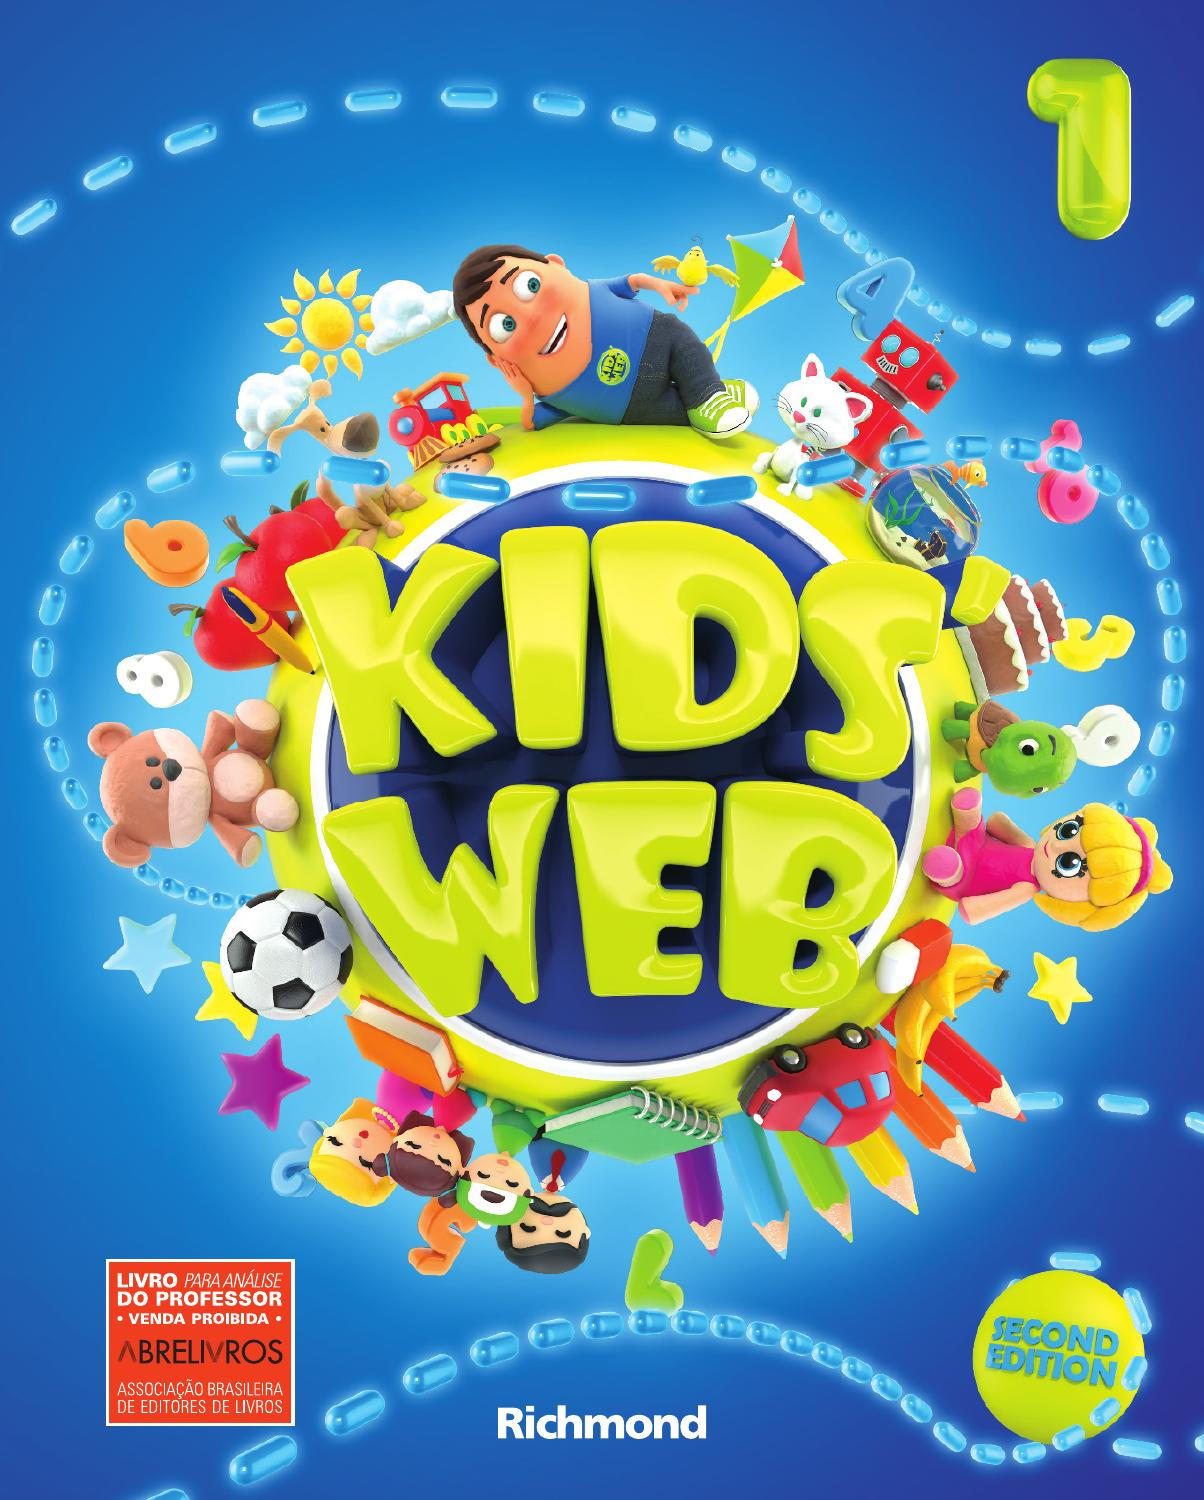 Kids web 1 2nd edition lp by richmond br issuu fandeluxe Gallery